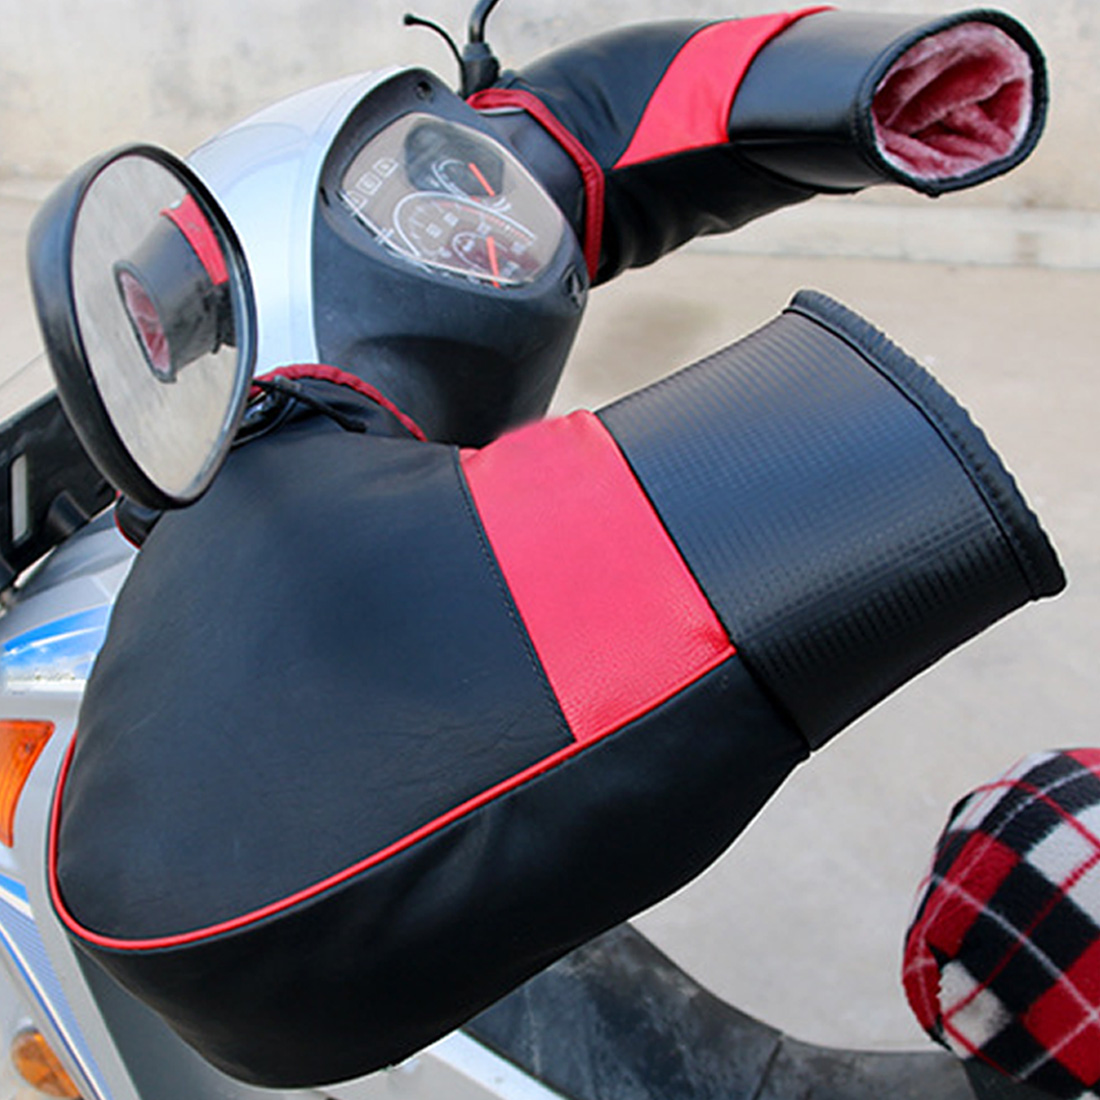 Handlebar Mitts Snowmobile Muffs Motorcycle Grip Hand Covers Waterproof Warmers